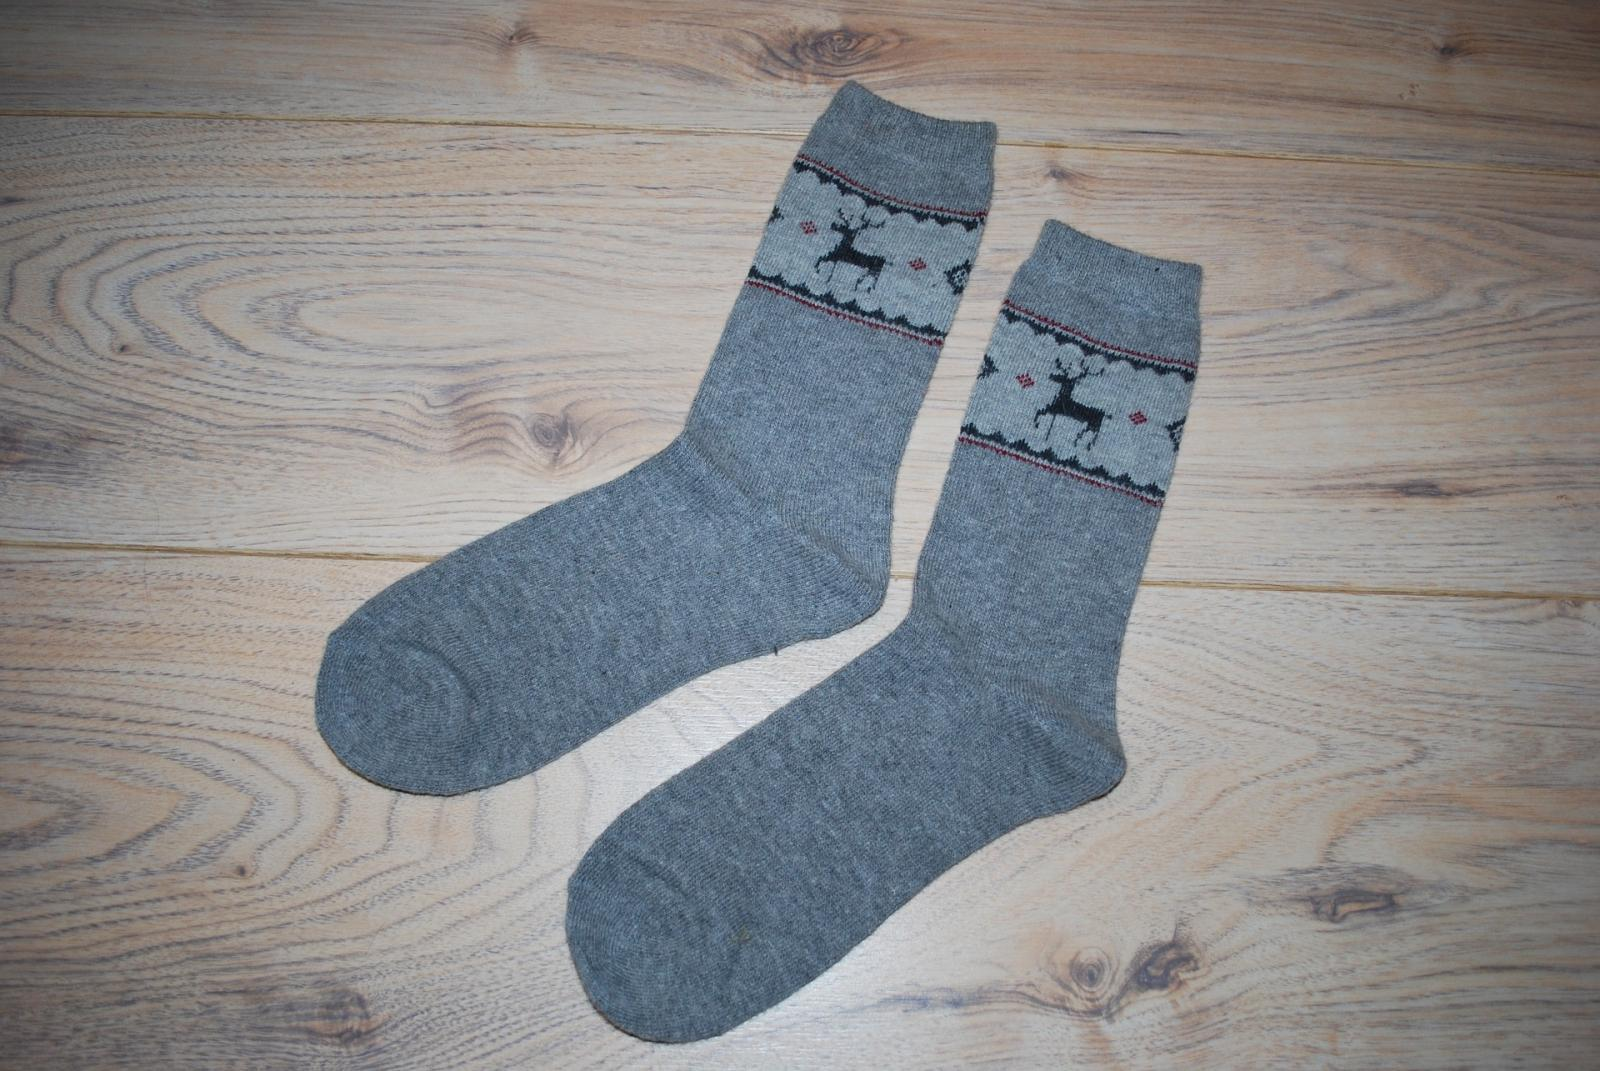 Grey Christmas socks